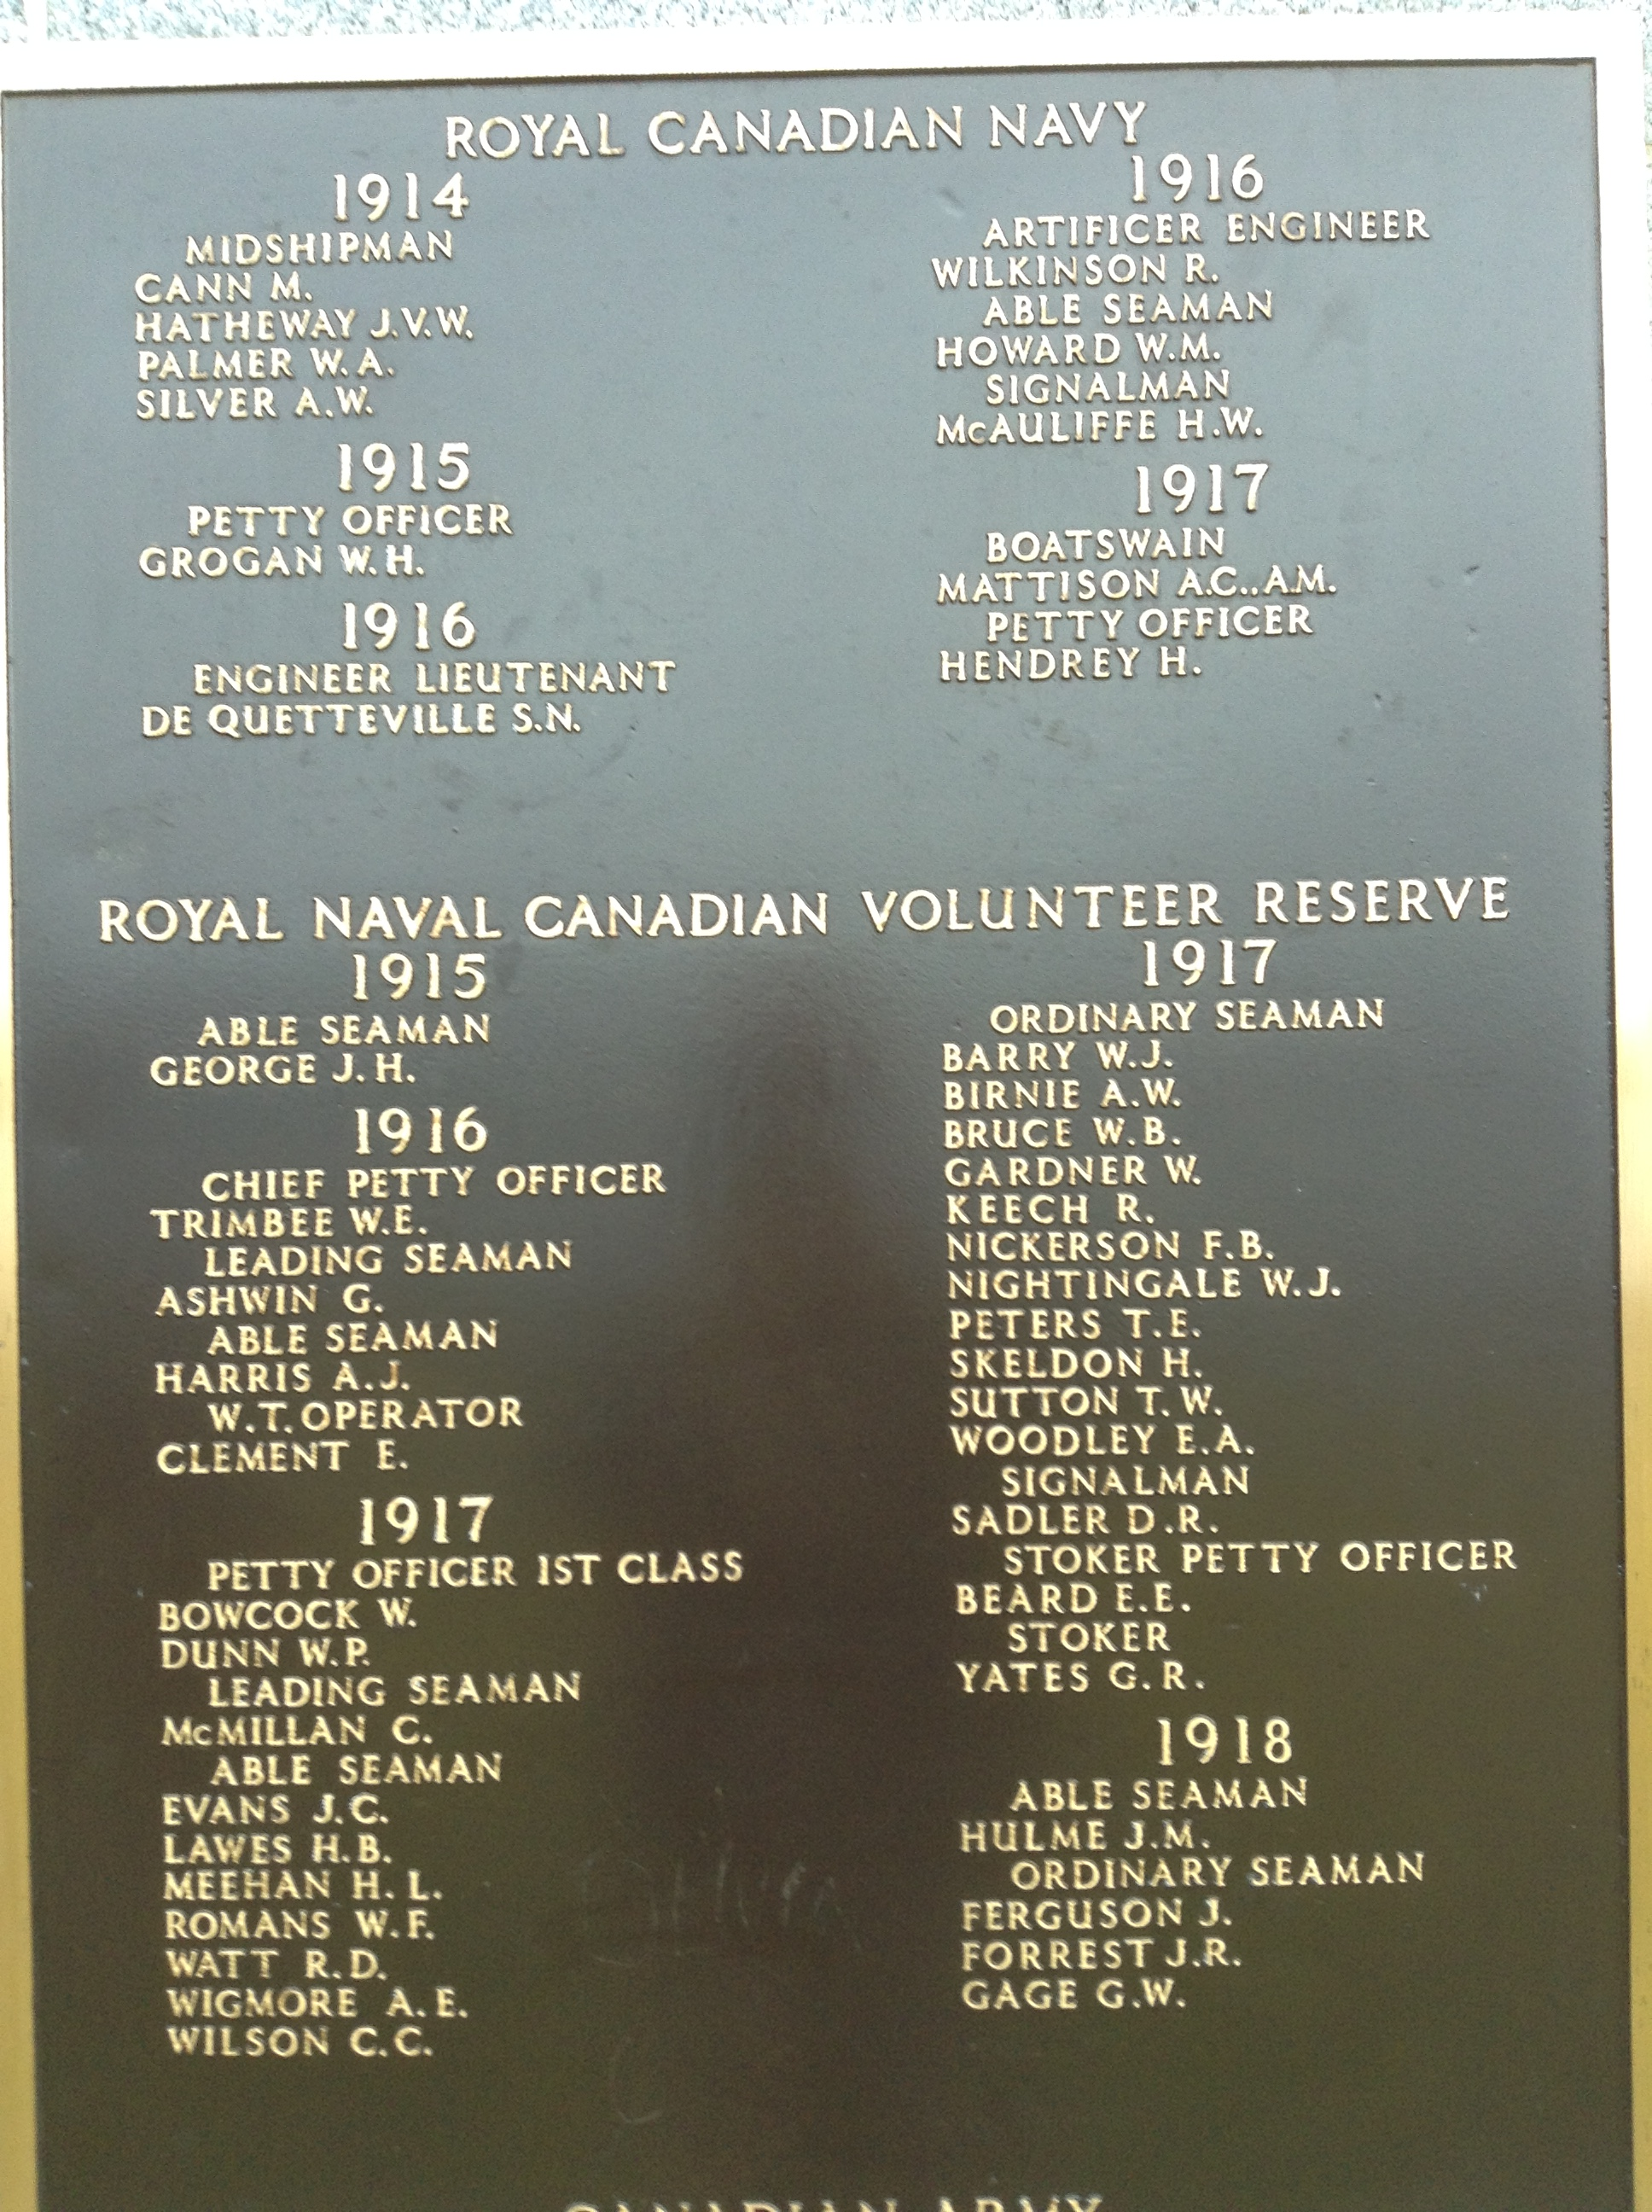 Memorial – The panel on the Halifax Memorial at Point Pleasant in Halifax, Nova Scotia, Canada whereon Gordon William Gage's name is inscribed.